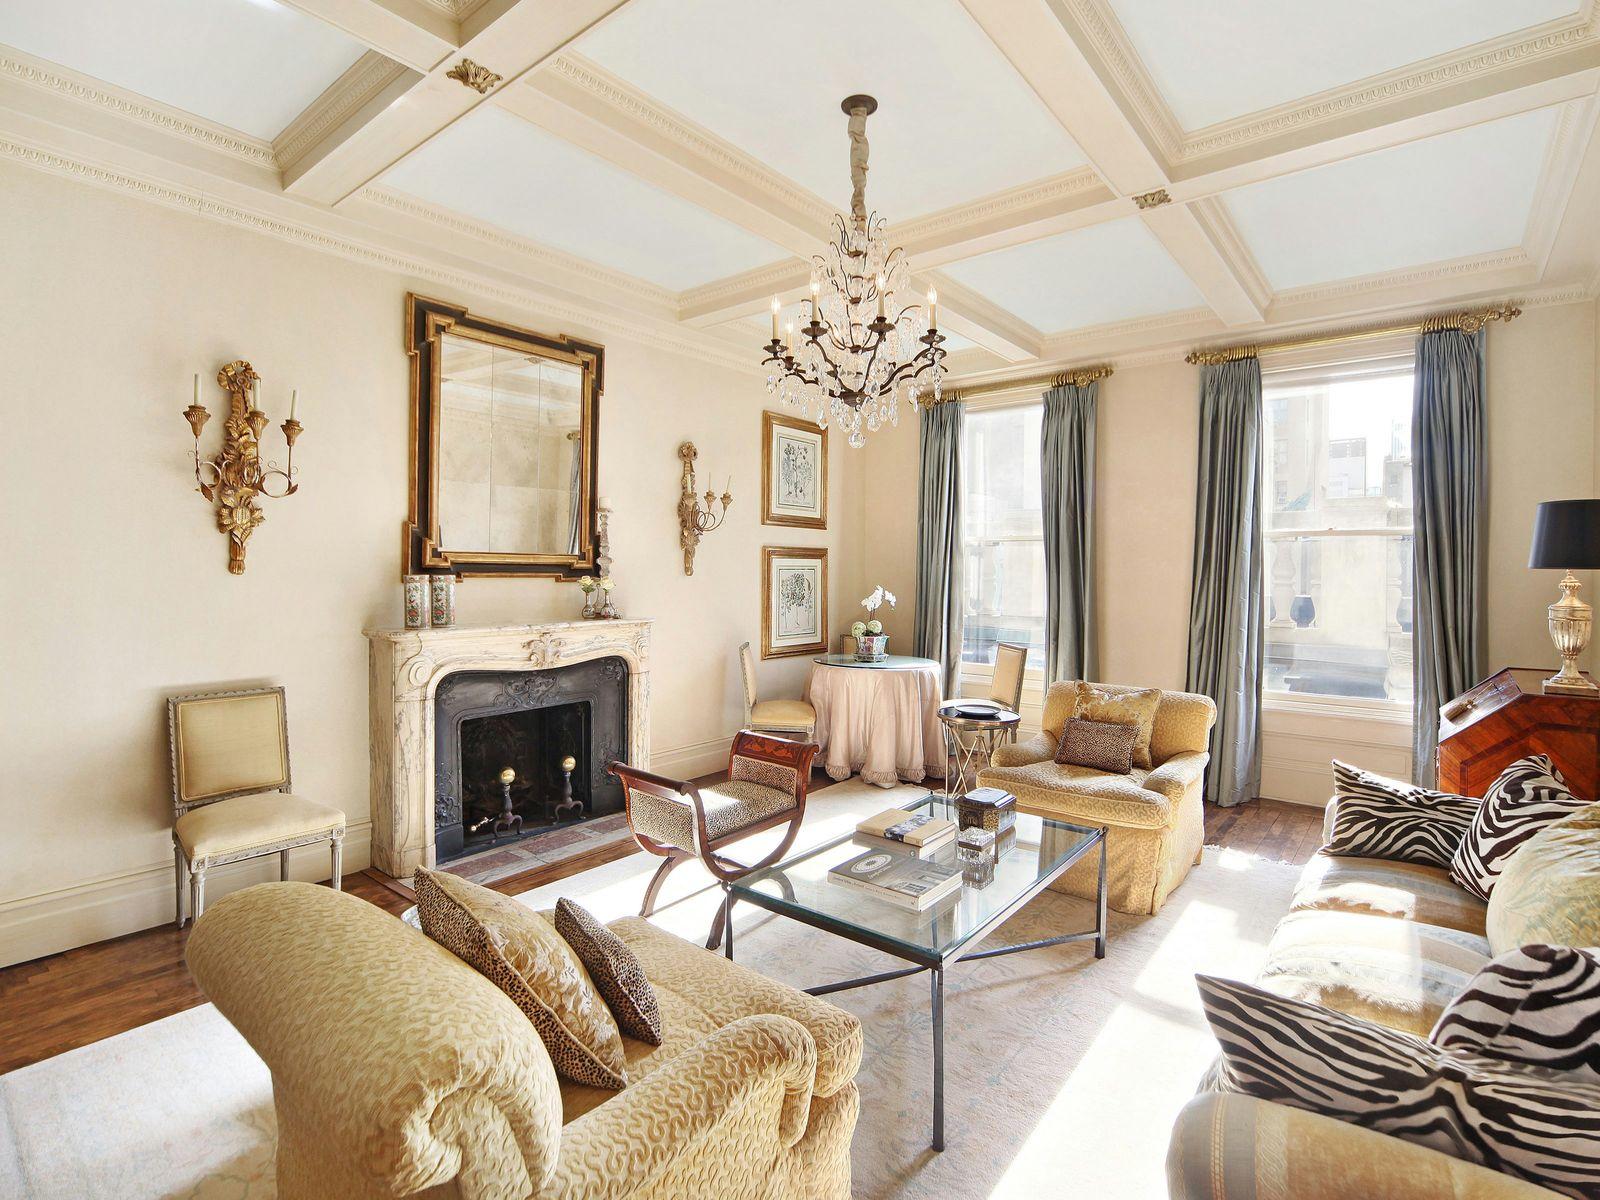 Pulitzer Mansion at 11 East 73rd Street, New York NY Cooperative - New York City Real Estate